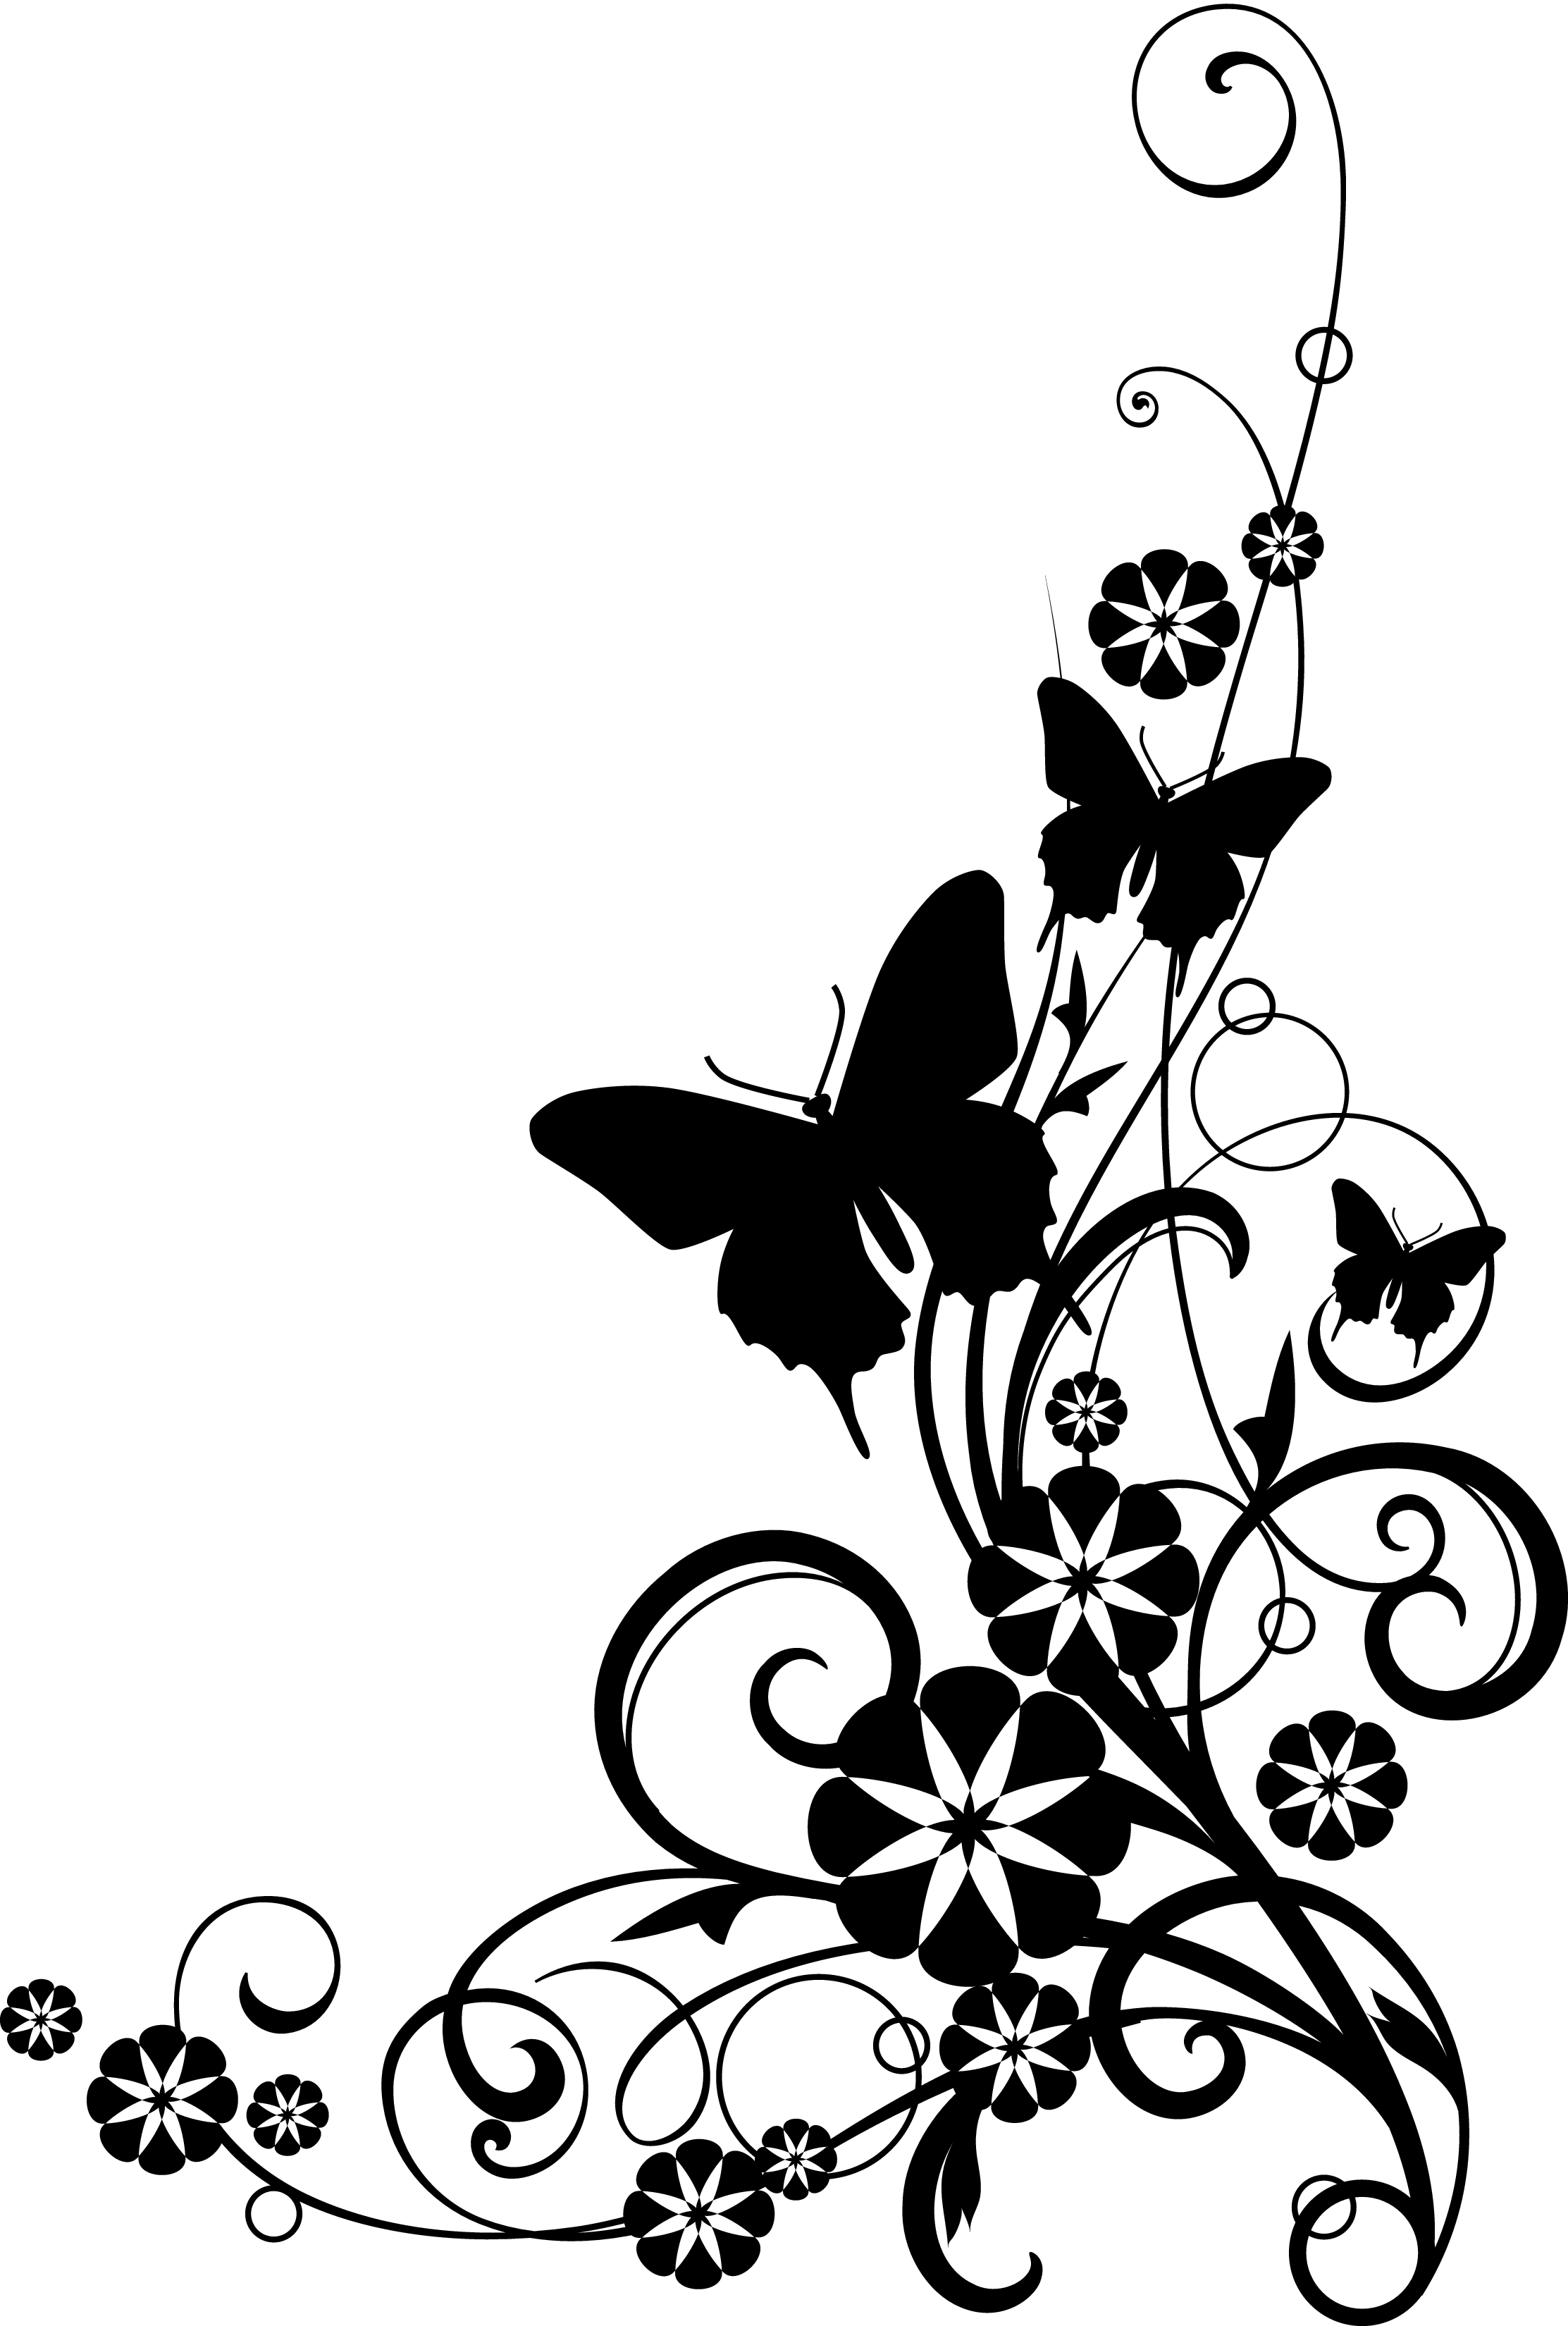 Wedding flowers black clipart png free download Wedding flower clipart black and white » Clipart Portal png free download